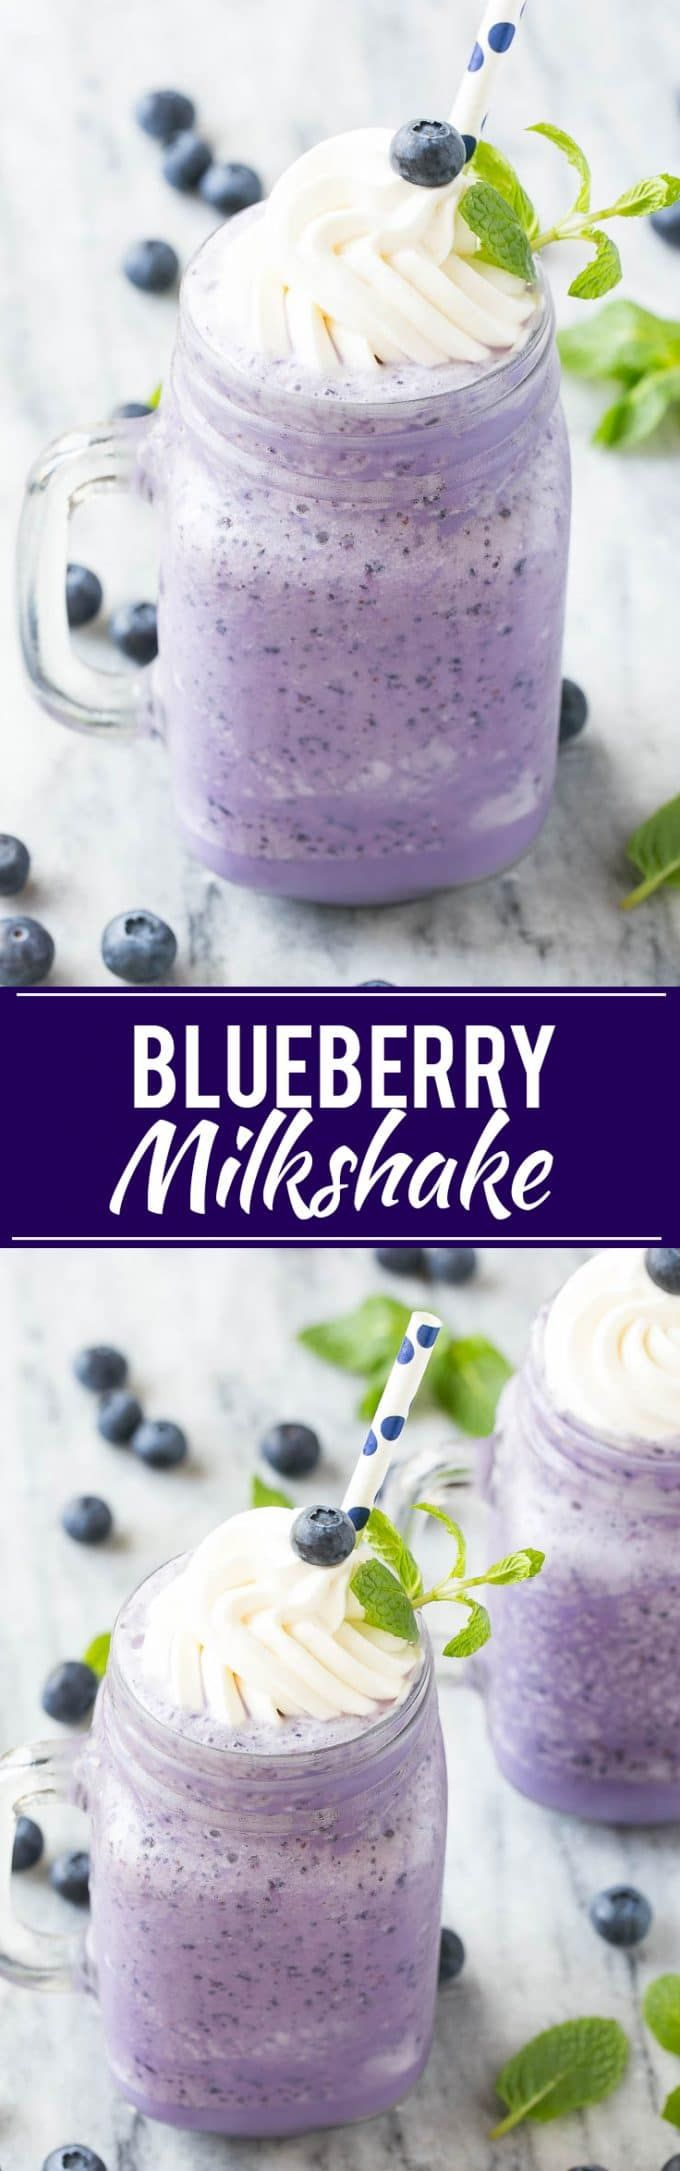 Blueberry Milkshake Recipe | Healthy Blueberry Milkshake | Light Blueberry Milks…